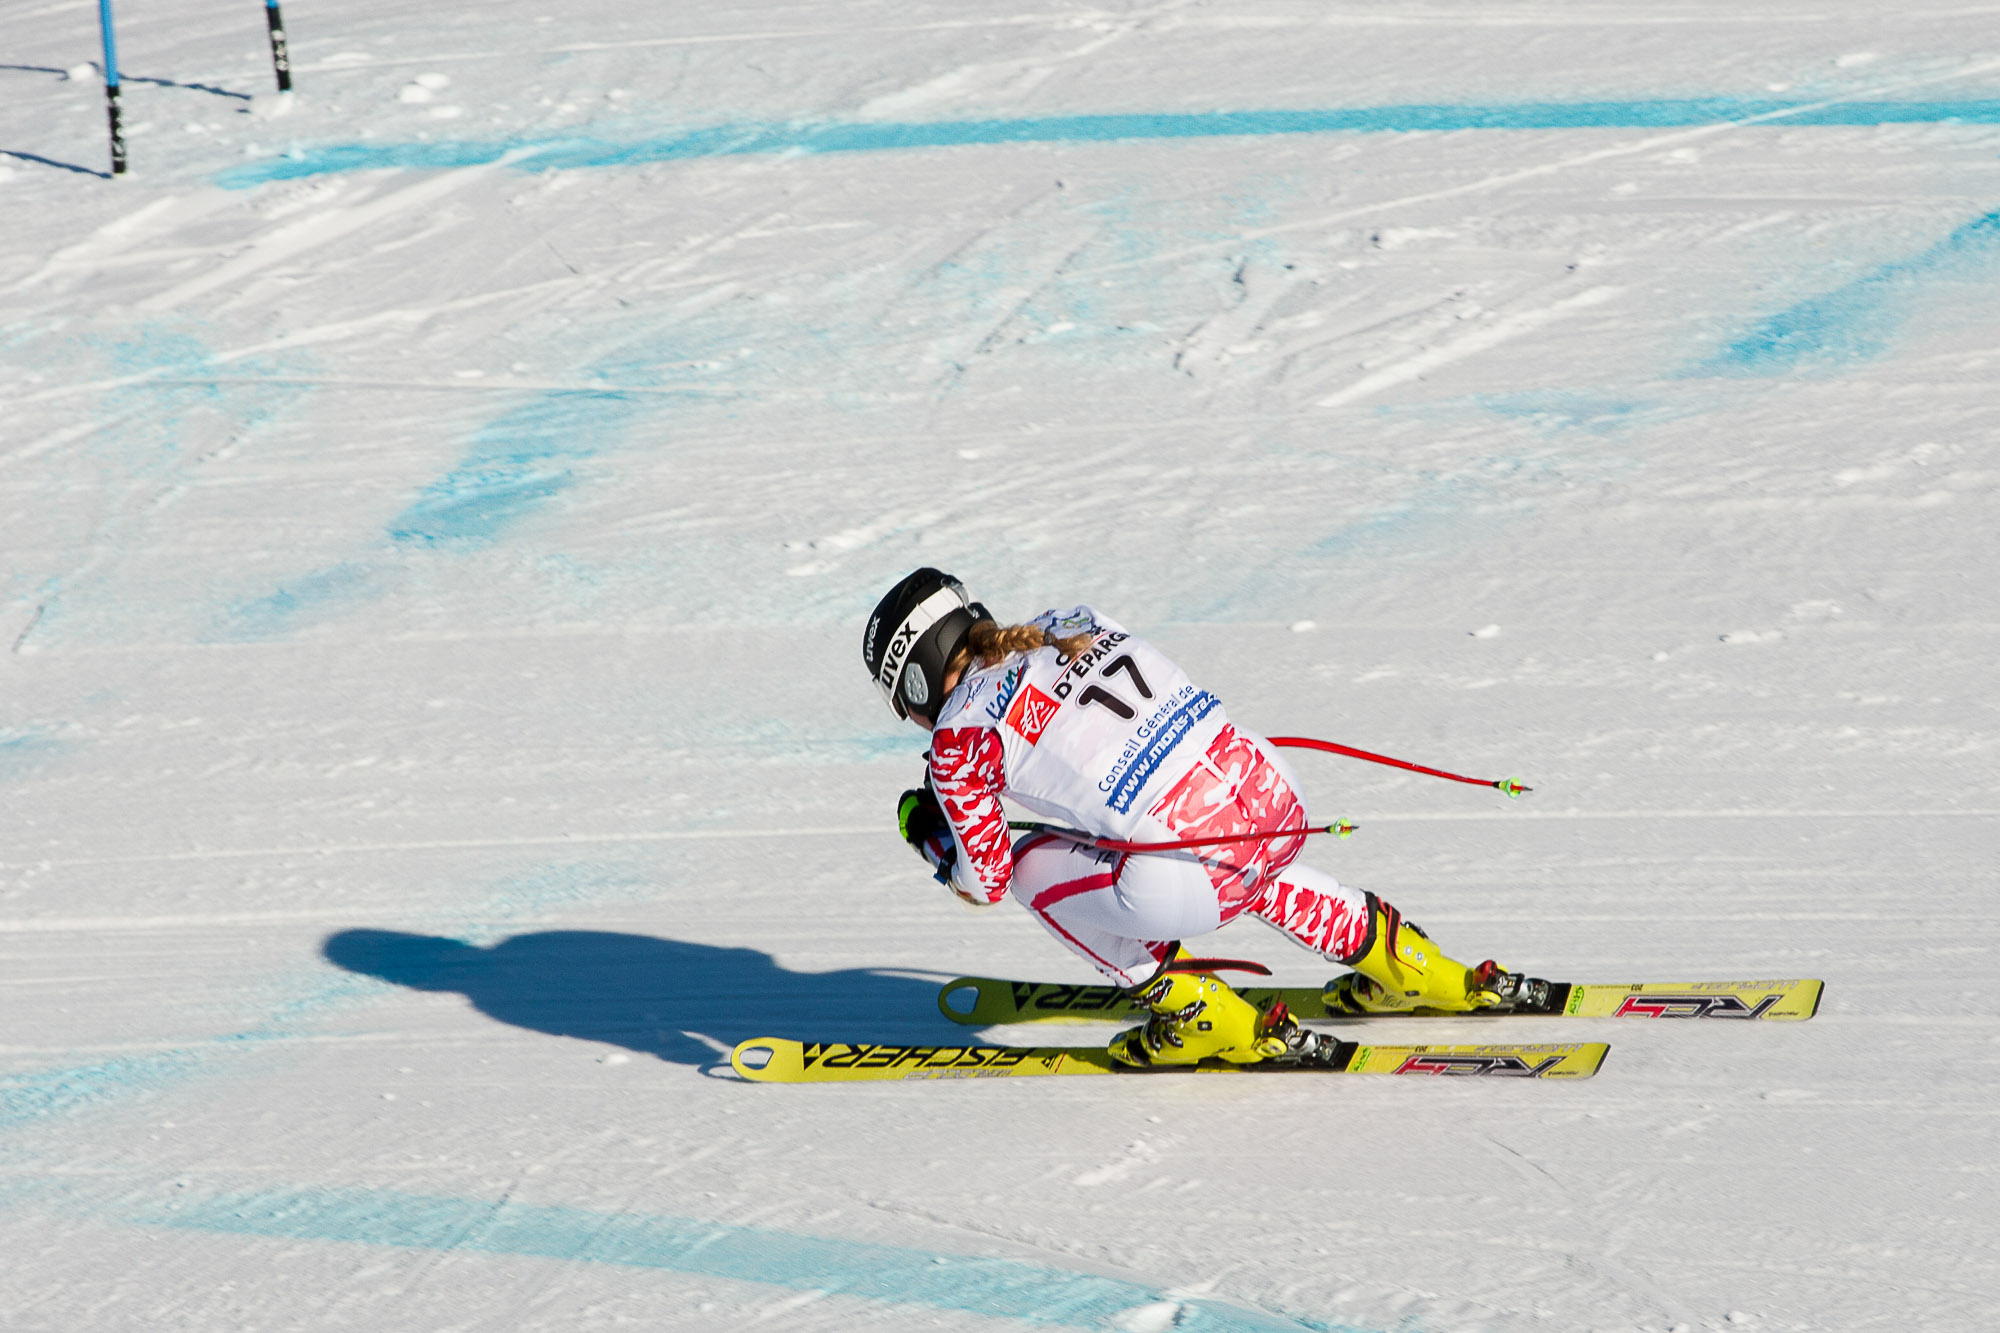 Coupe_Europe_ski_dames-79.jpg